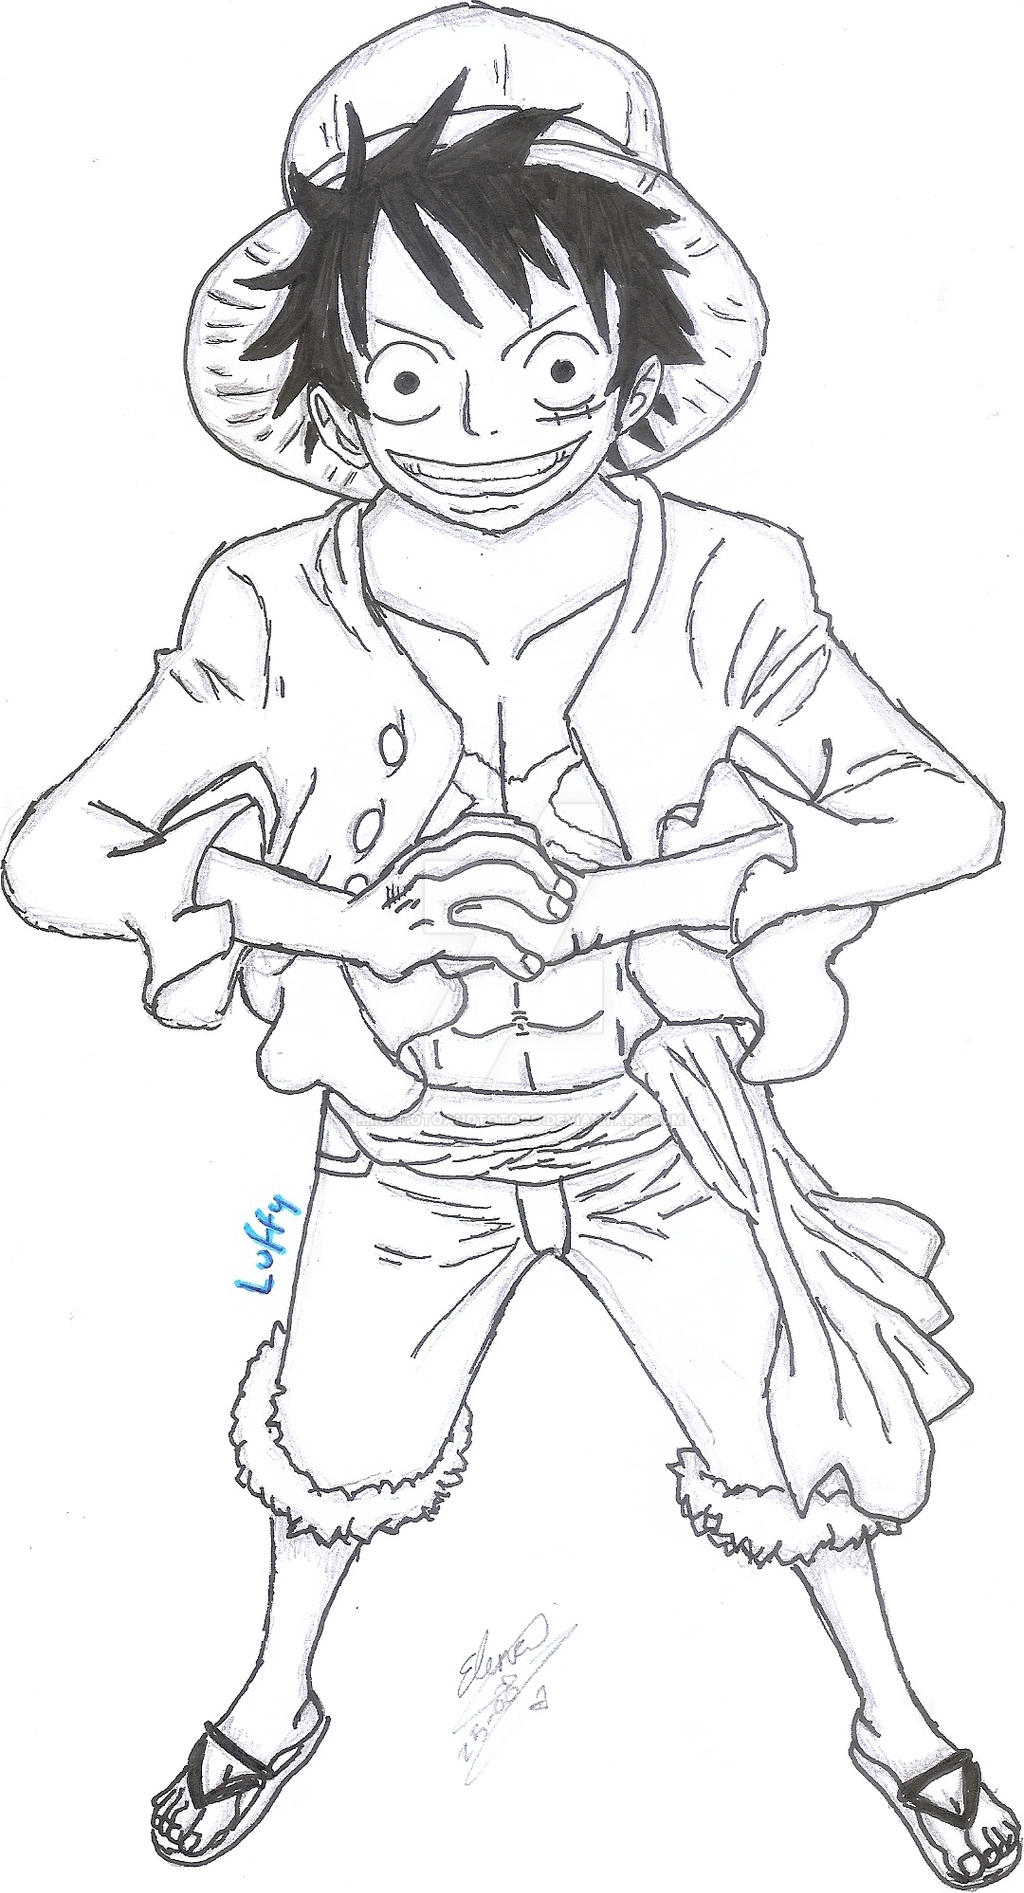 Luffy 2 years after lineart by minamotoandtotoro on deviantart - Coloriage one piece 2 ans plus tard ...